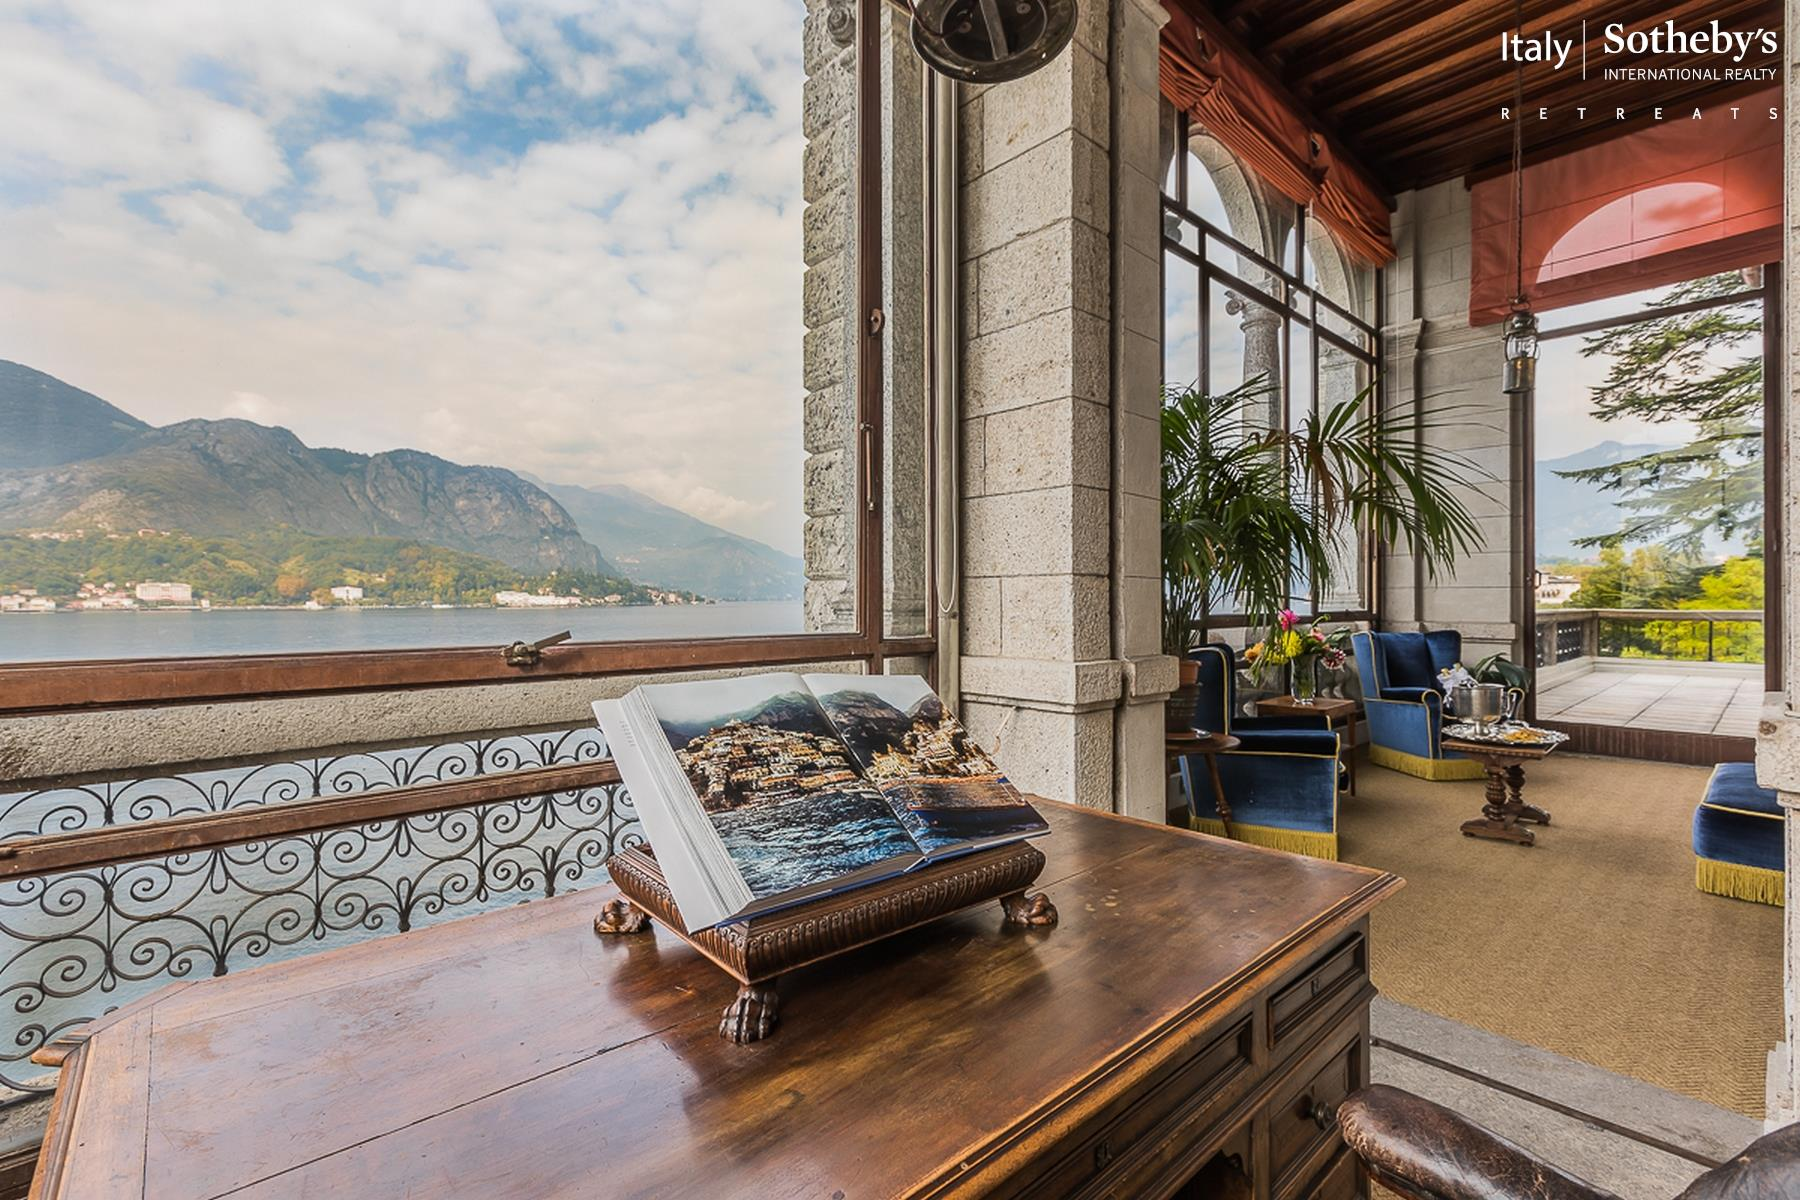 Italy Sotheby's Retreats